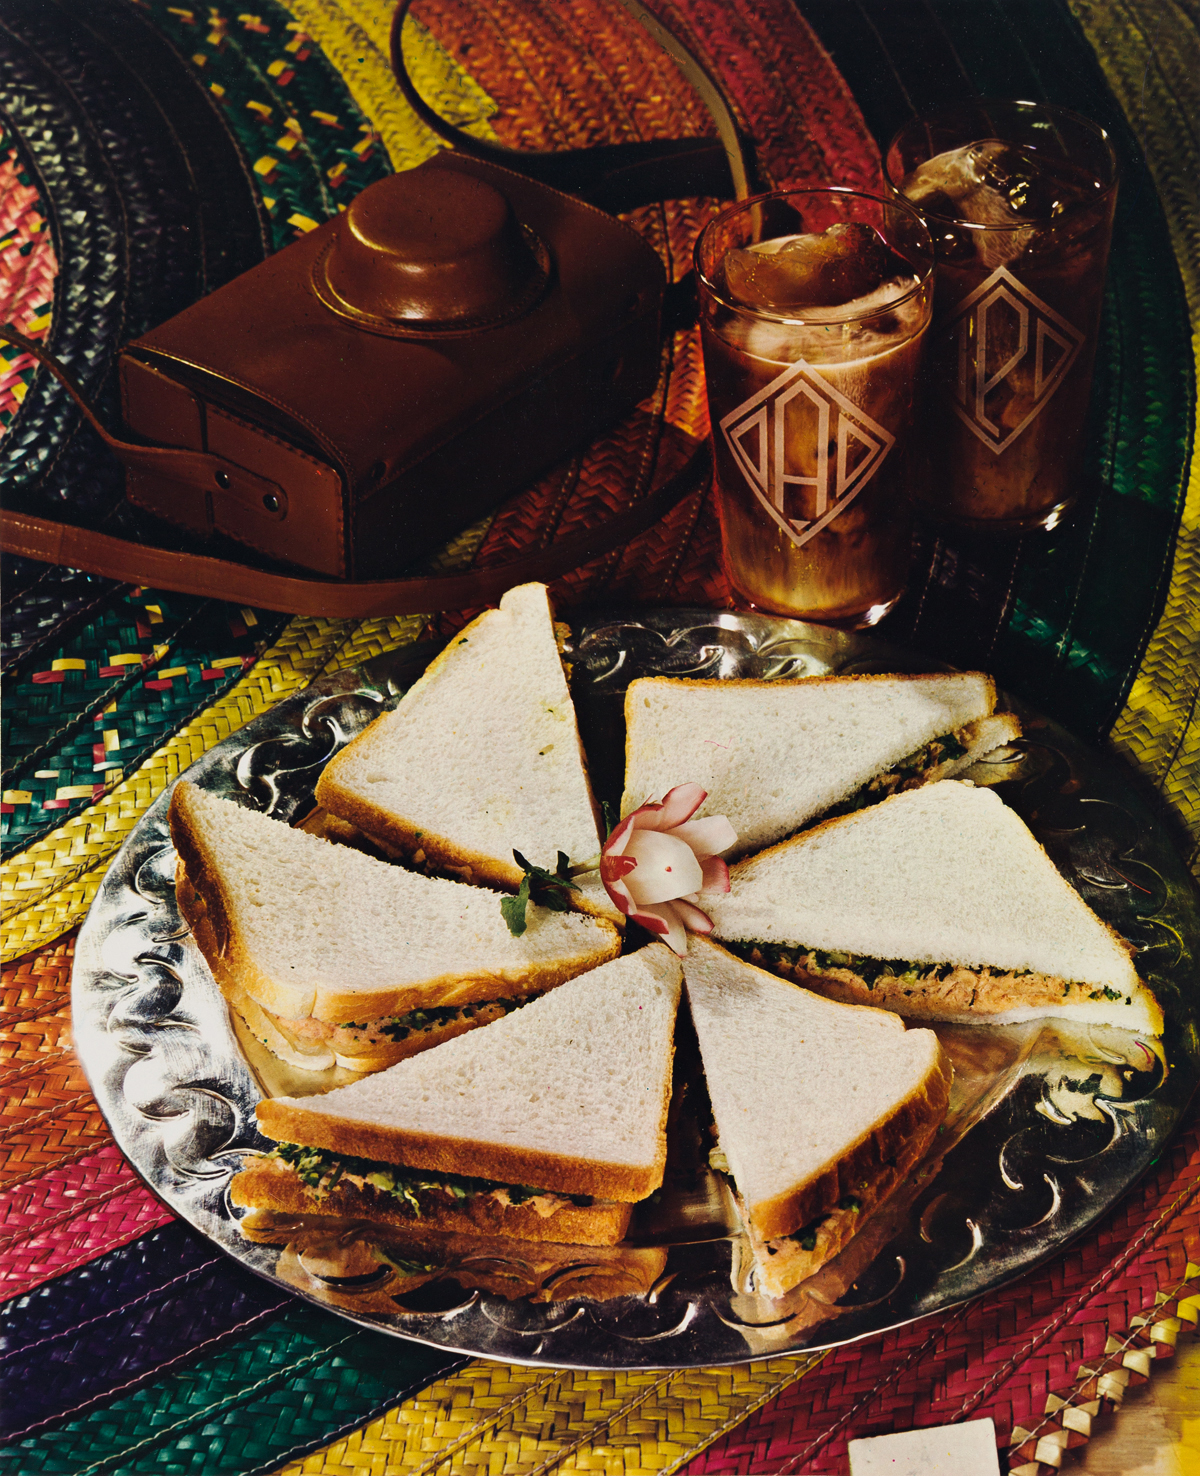 PAUL-OUTERBRIDGE-JR-(1896-4958)-Sandwiches-on-Tray